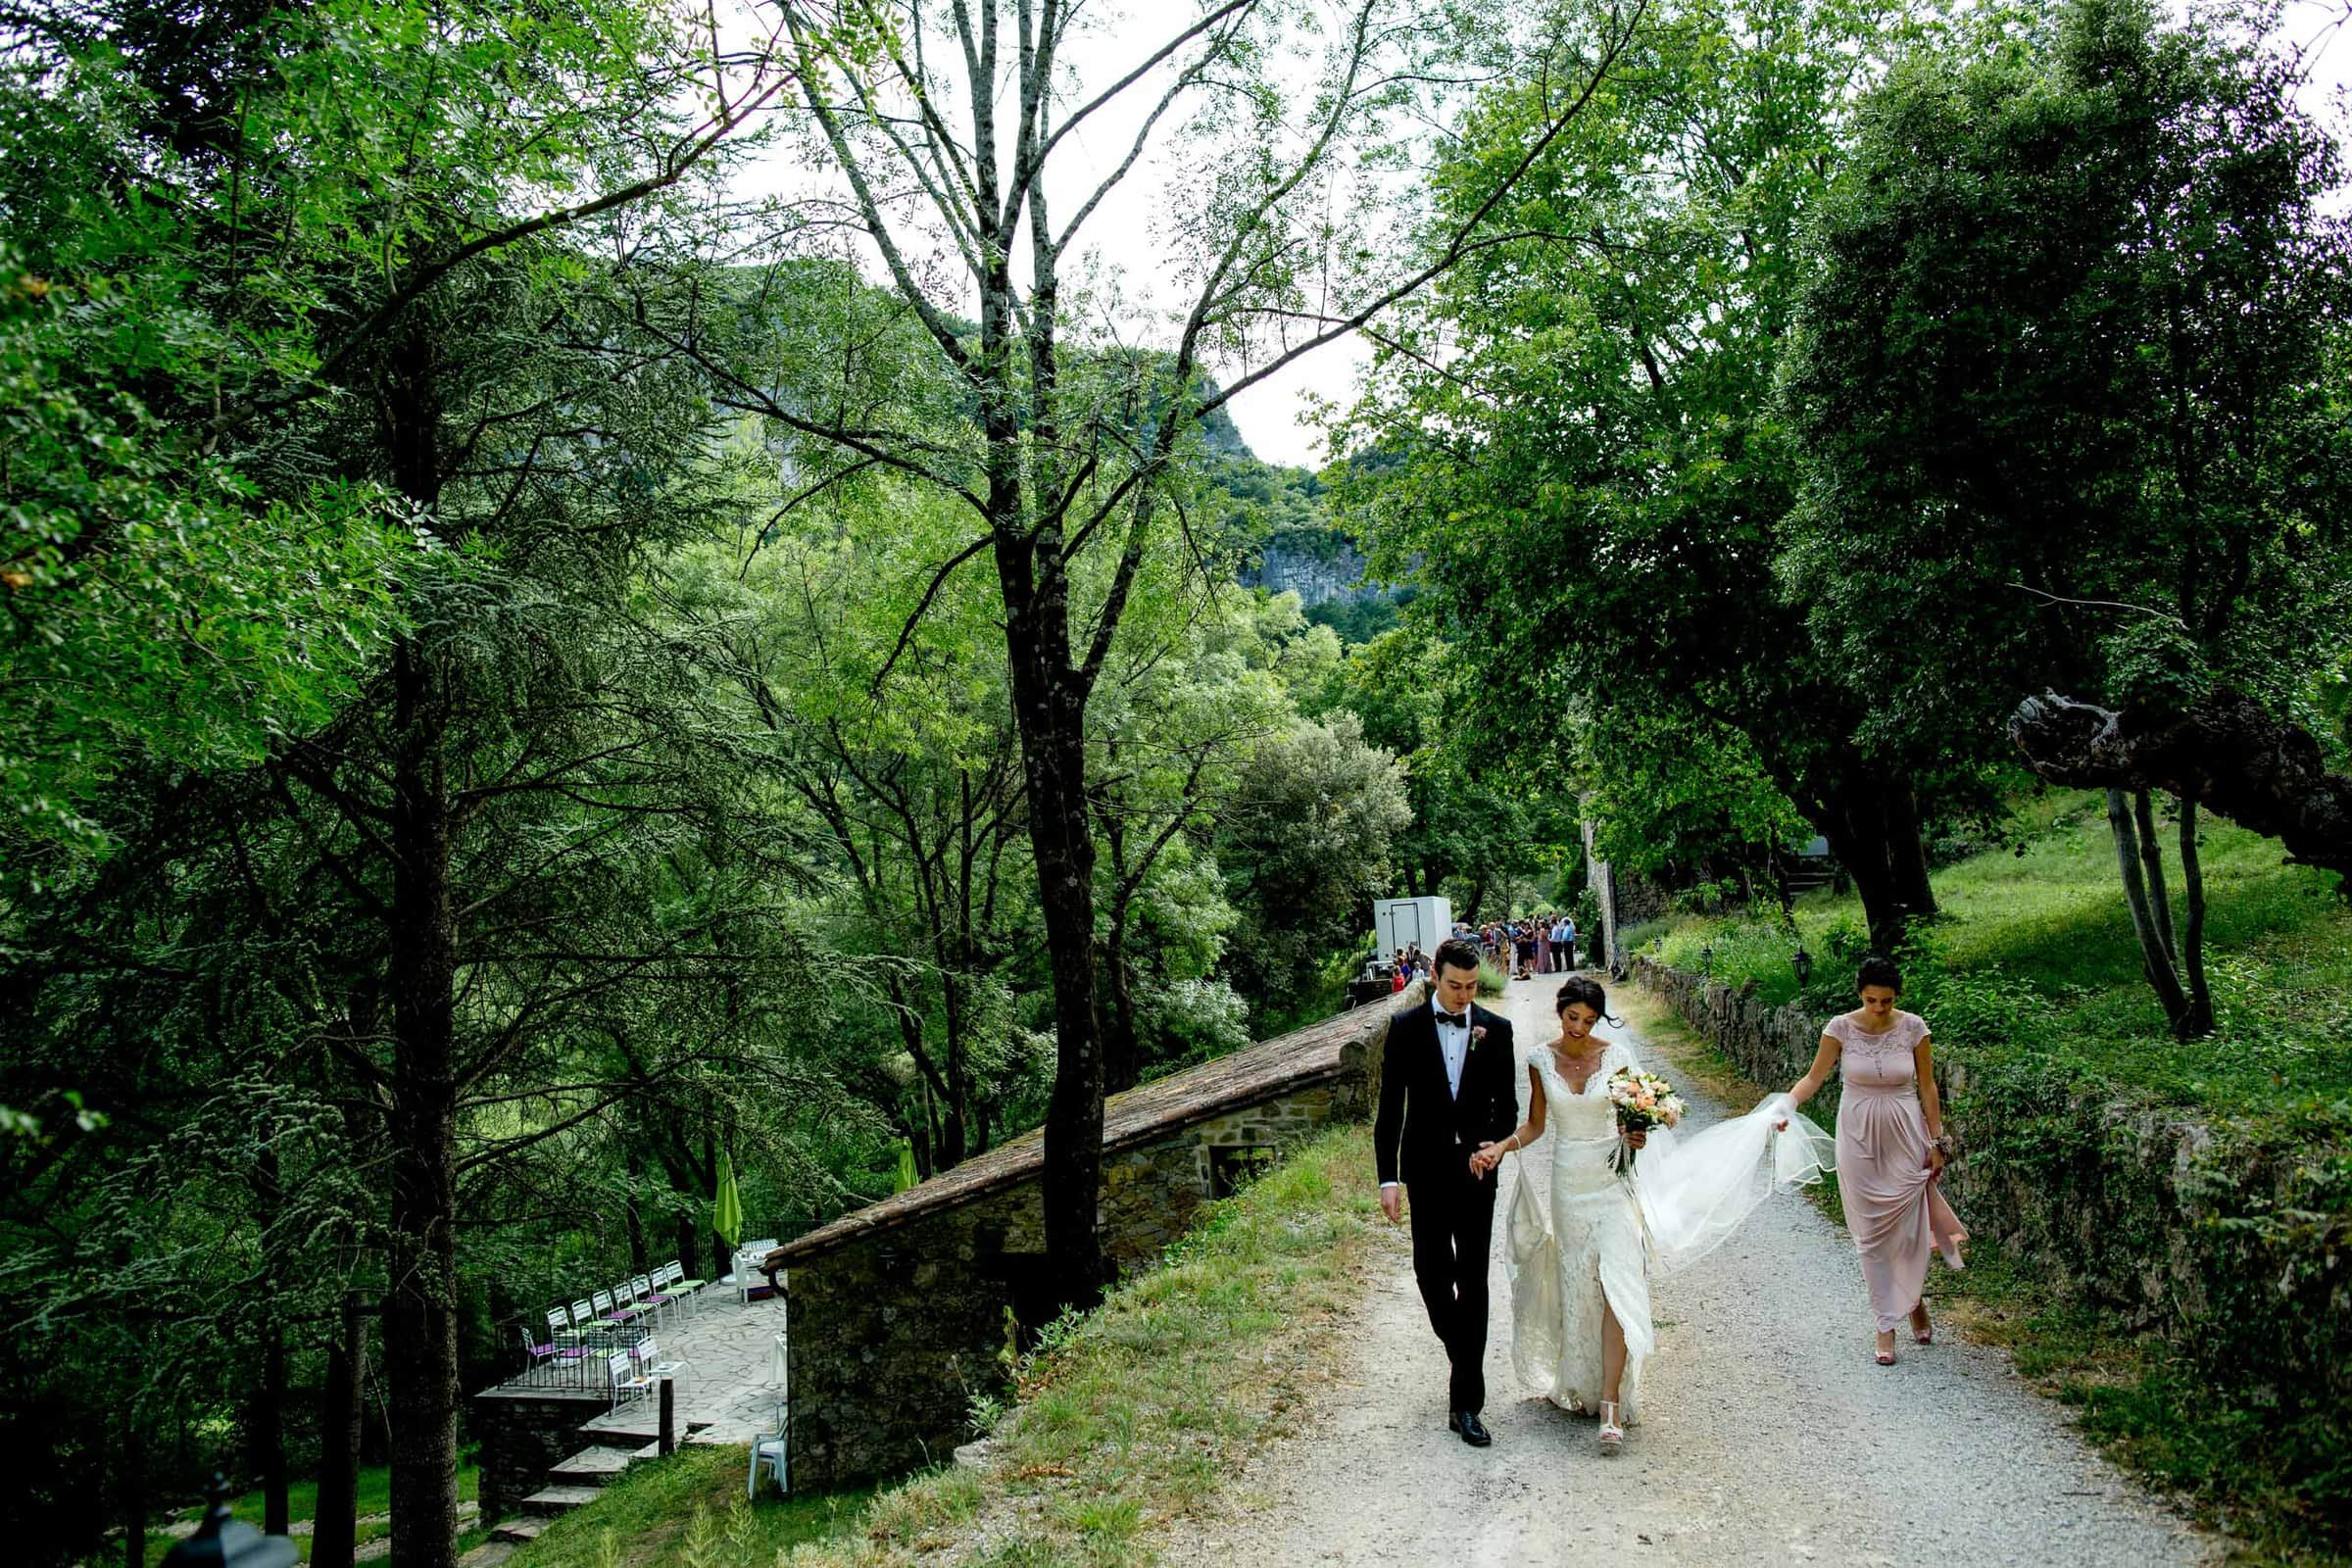 Bride and groom walking through the forest moments after their Chateau Zen wedding in the South of France near Montepelier.